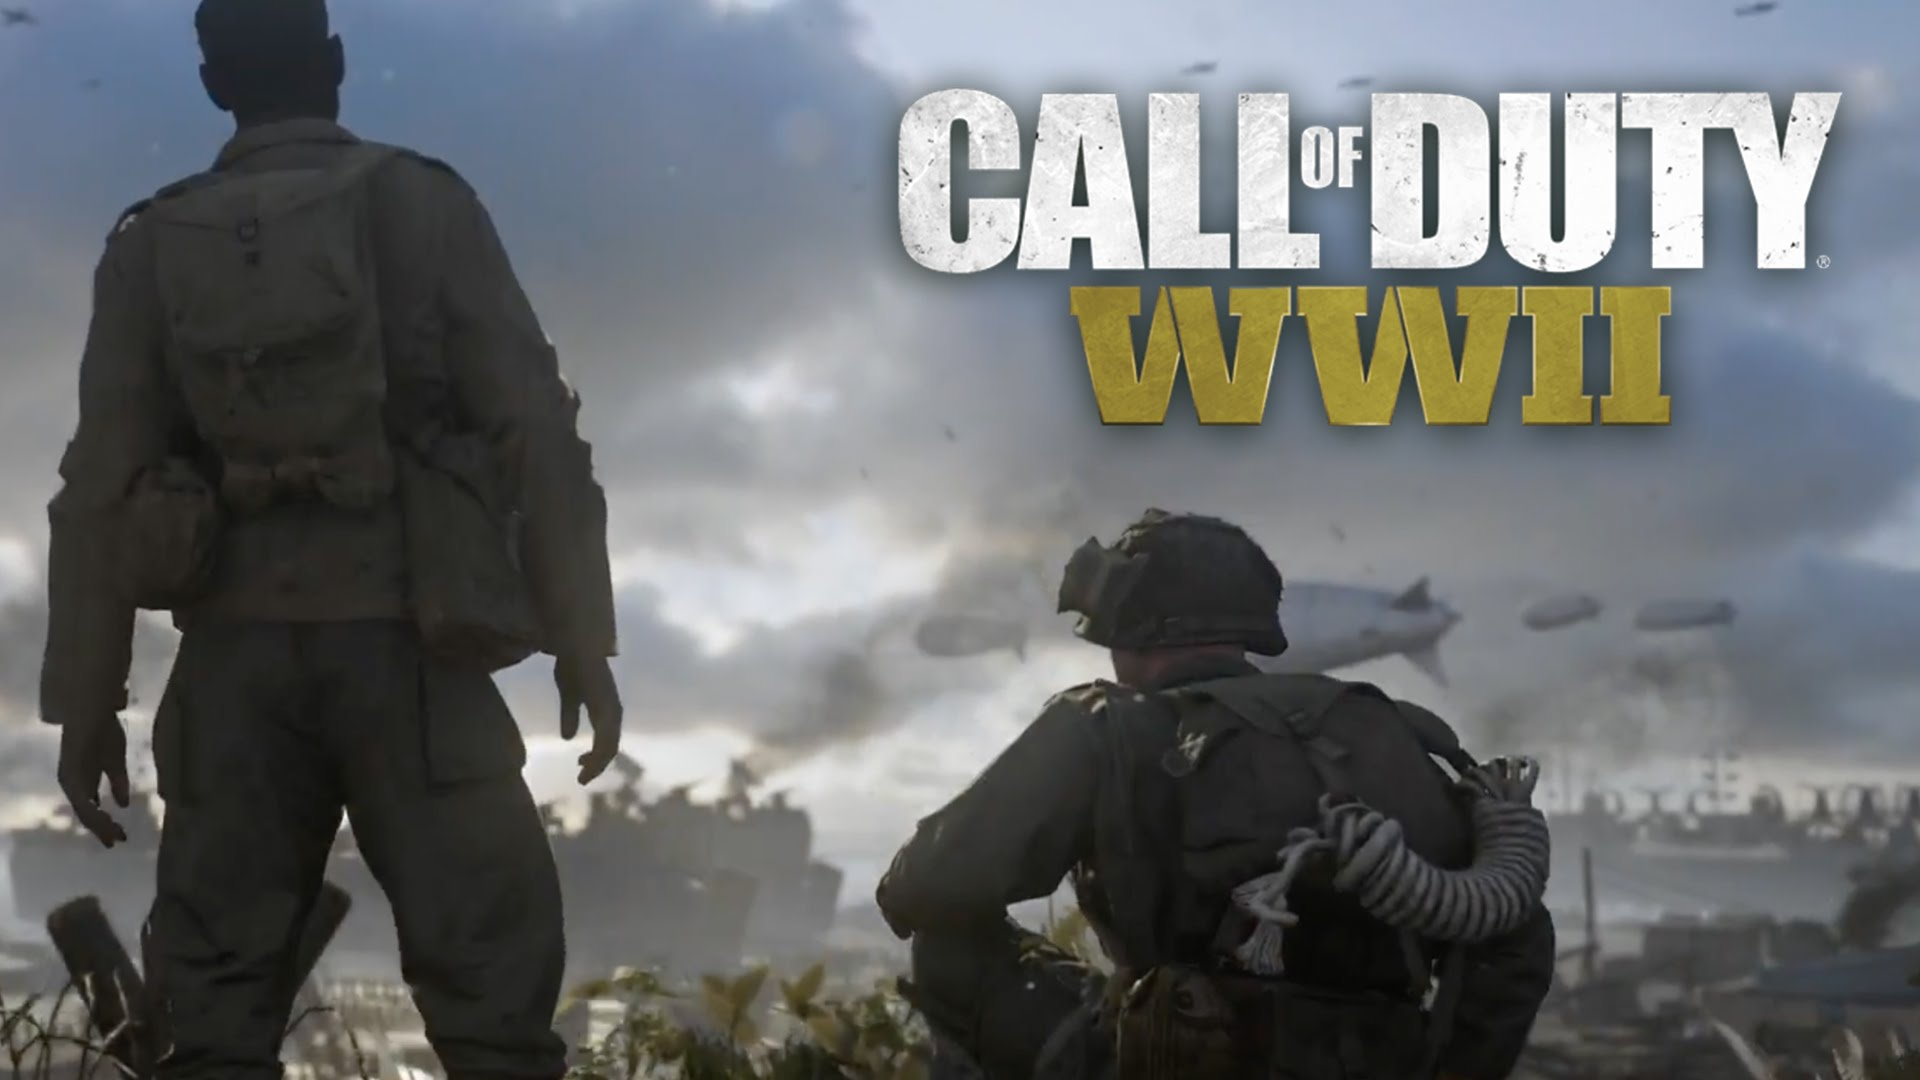 Call of Duty: WWII,Call of Duty,COD,Activision,Sledgehammer,کتیویژن,اسلج همر گیمز,استودیو اسلج همر گیمز,مشکل وصل شدن بازی Call of Duty: WWII,مشکل بخش Headquarters بازی Call of Duty: WWII,Headquarters,اخبار جدید بازی Call of Duty: WWII,مشکل Headquarters بازی COD: WWII رفع شد,مشکل Headquarters بازی Call of Duty: WWII رفع شد